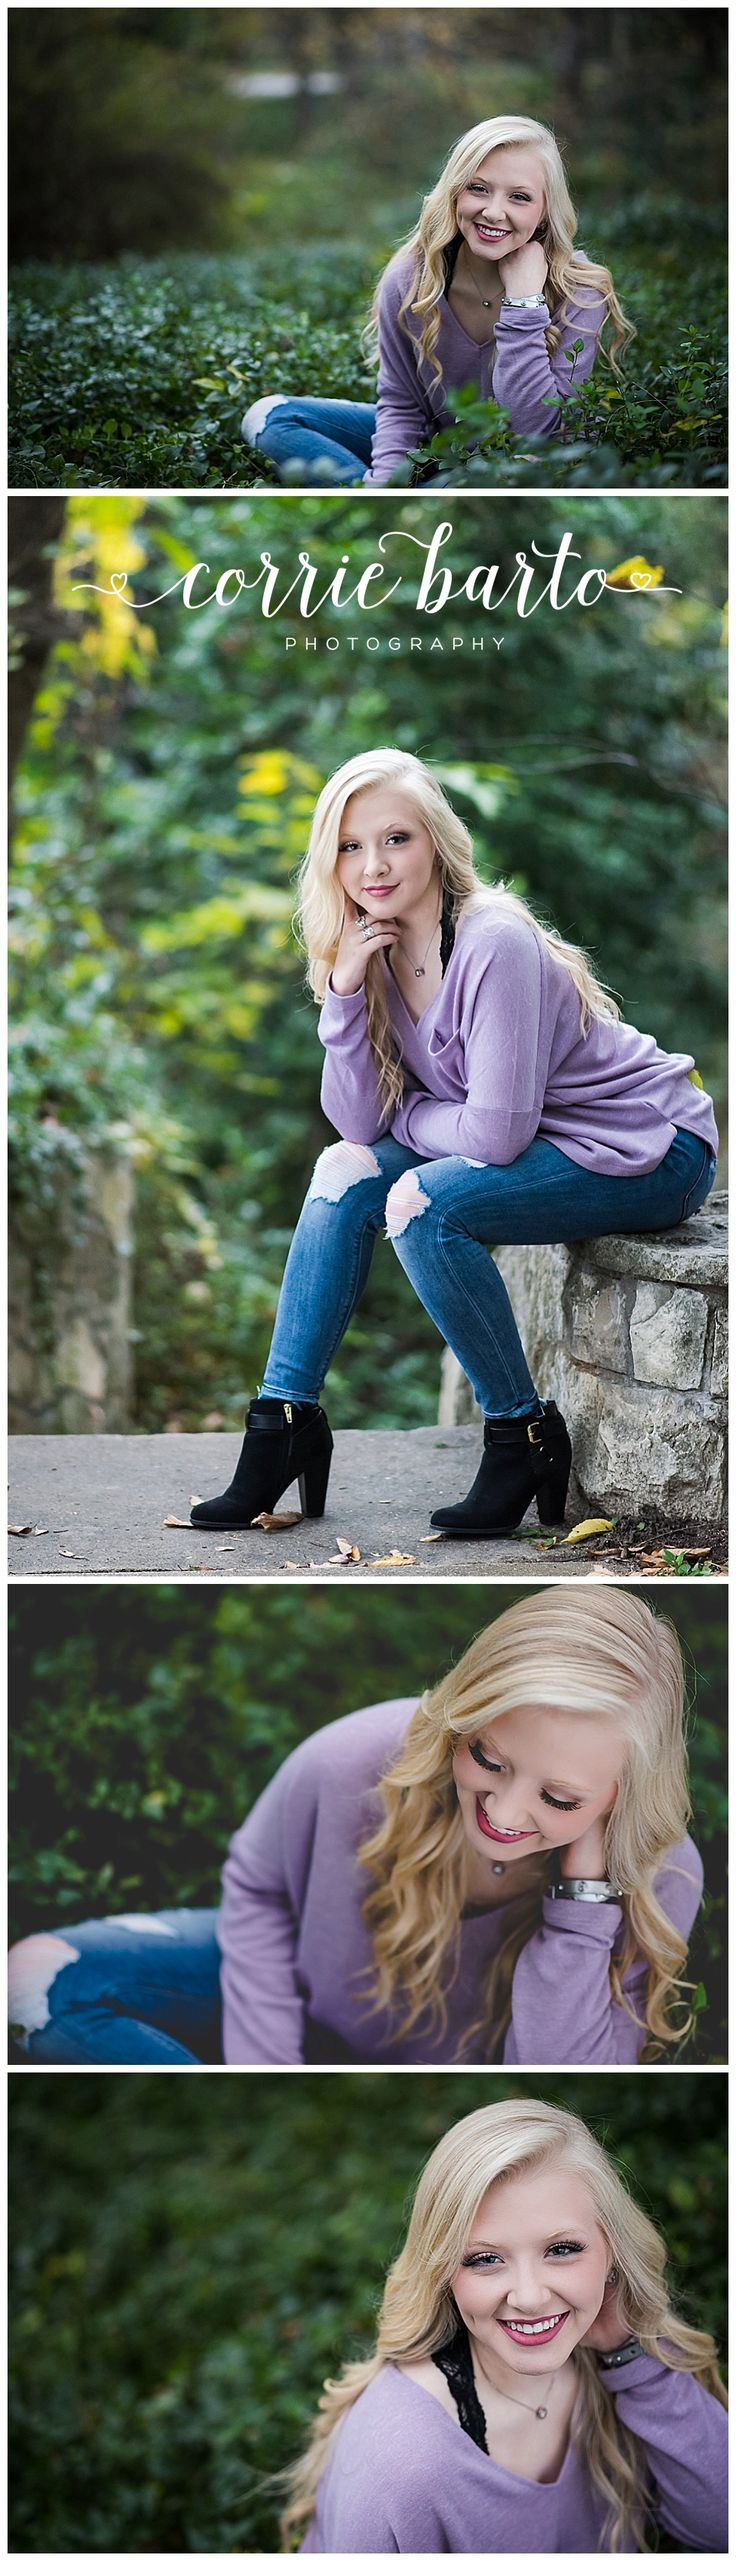 Senior Pictures-senior girls-senior girl poses-cute edgy senior girl outfits-photography for girls